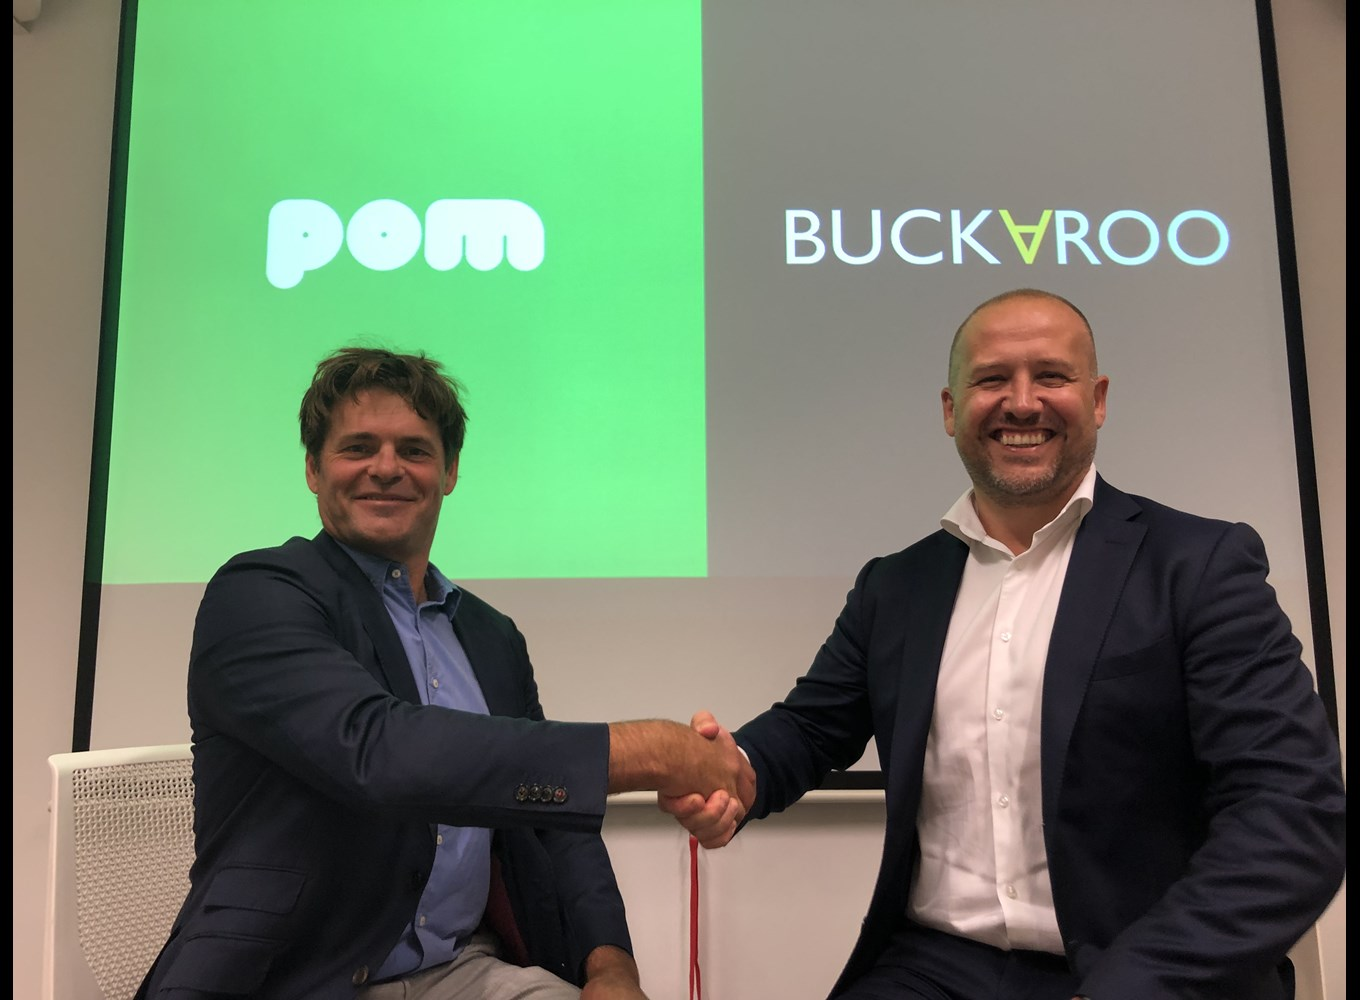 Johannes Vermeire (CEO at POM) and Alexander van Leeuwen (Relation Manager at Buckaroo)